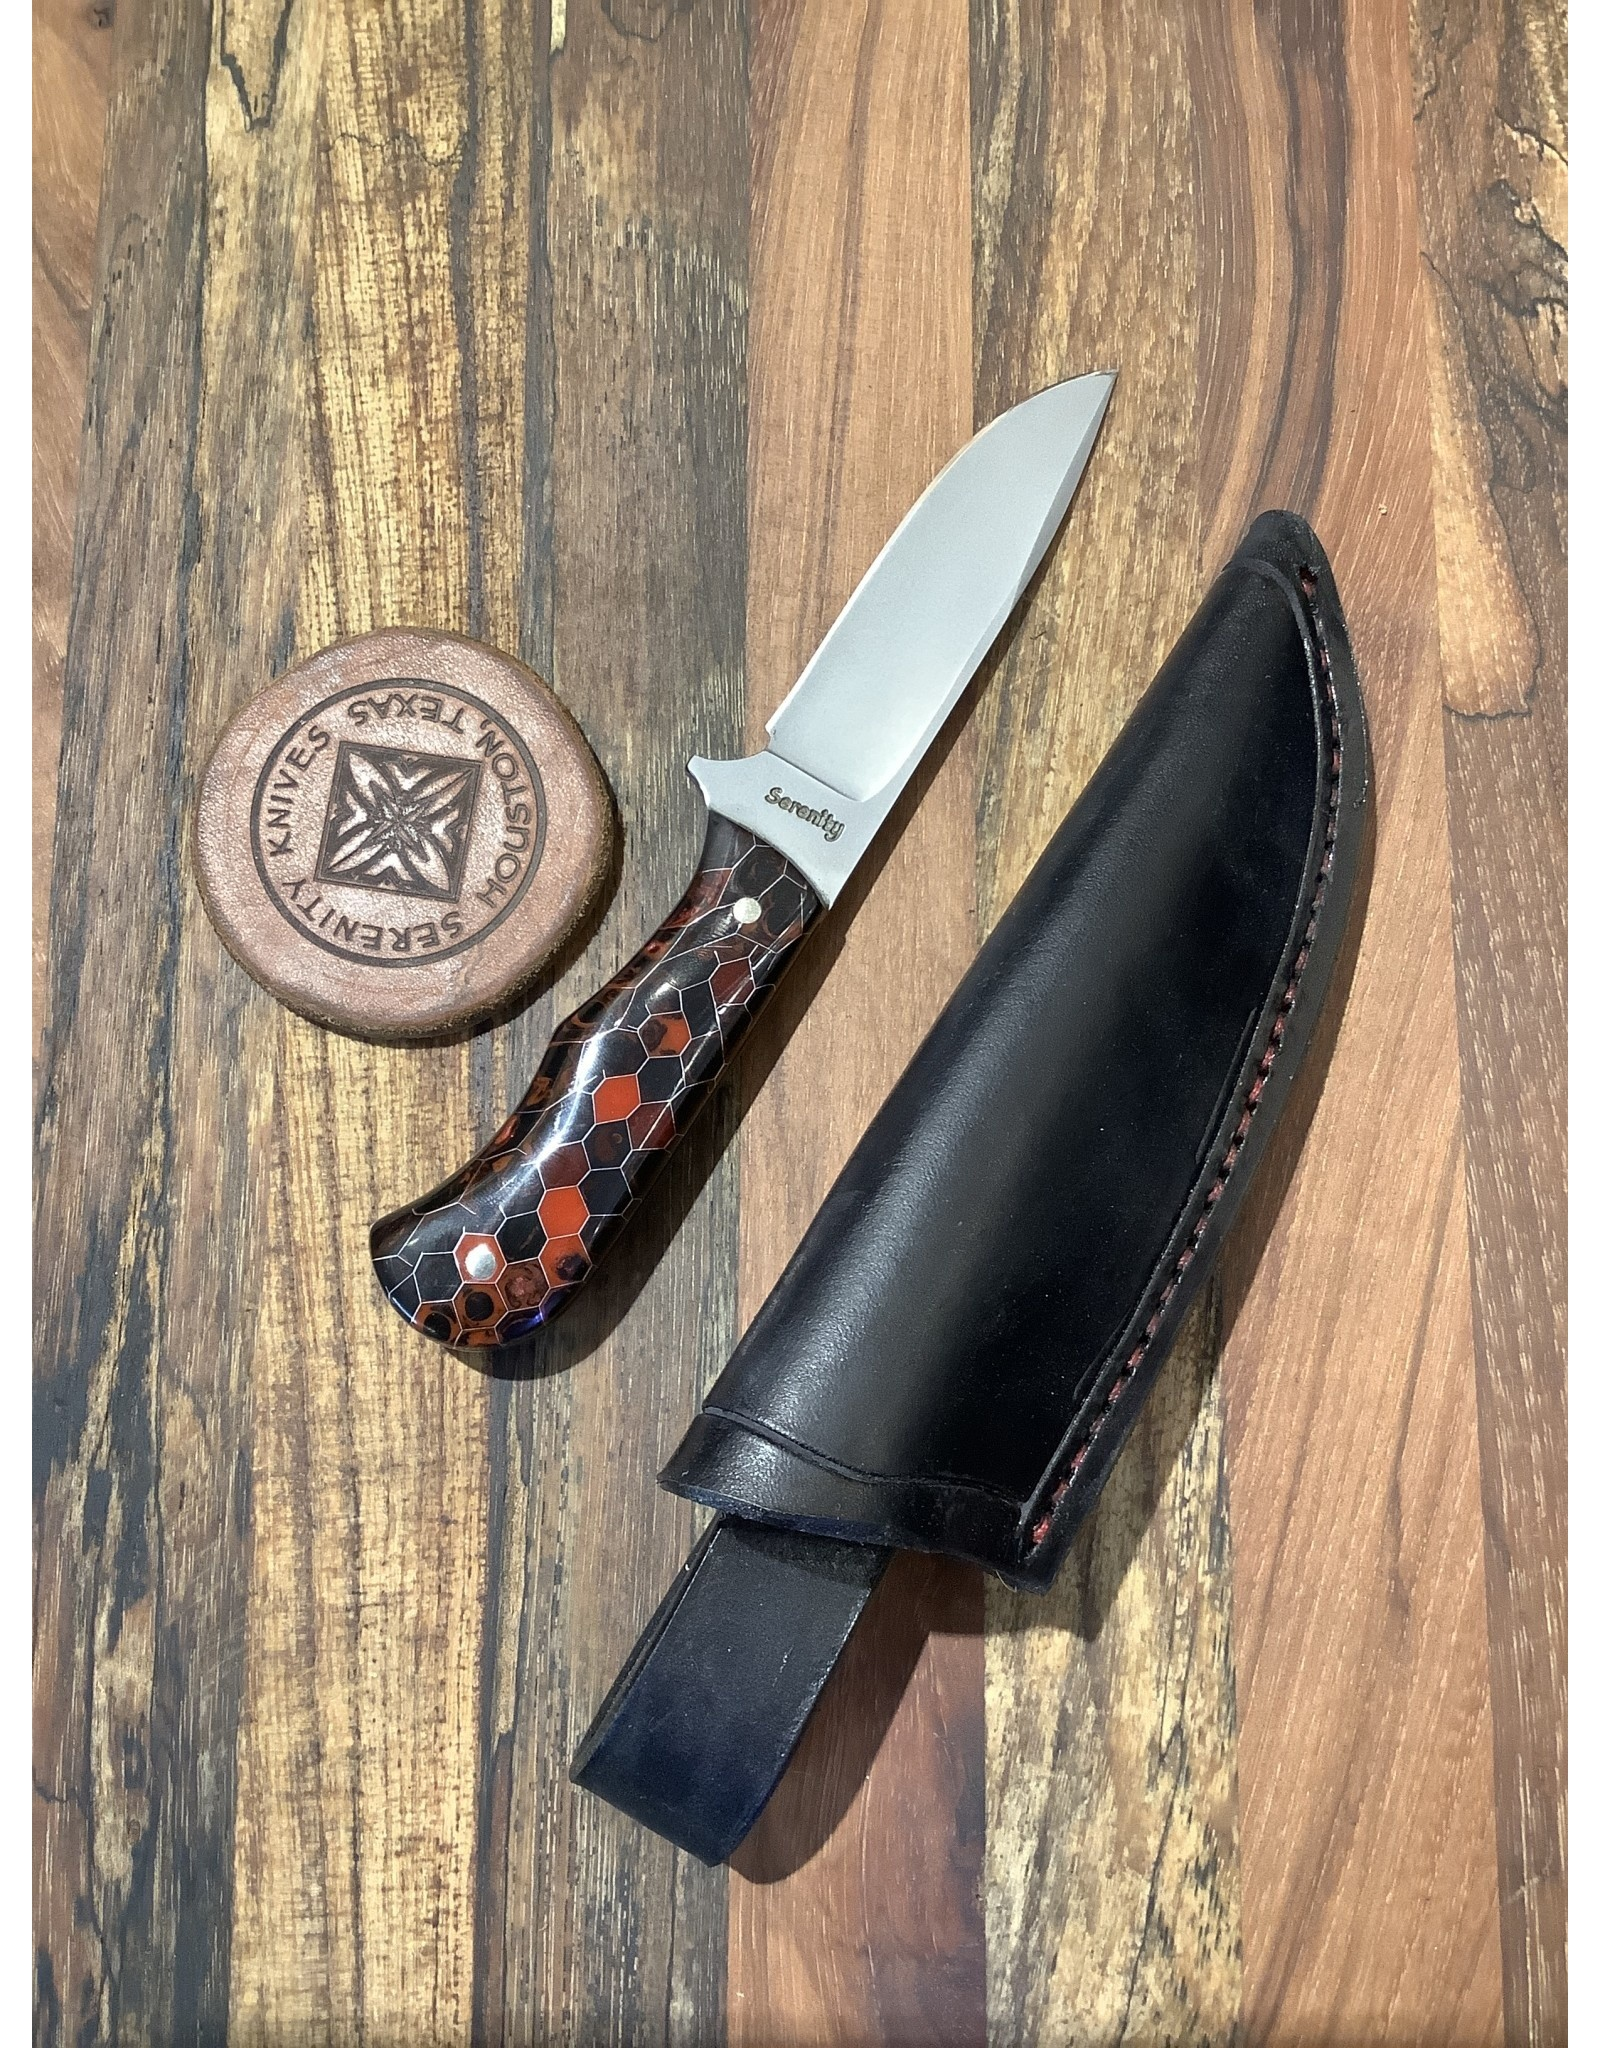 Serenity Small Drop Point Hunter Bradford Hunt Custom